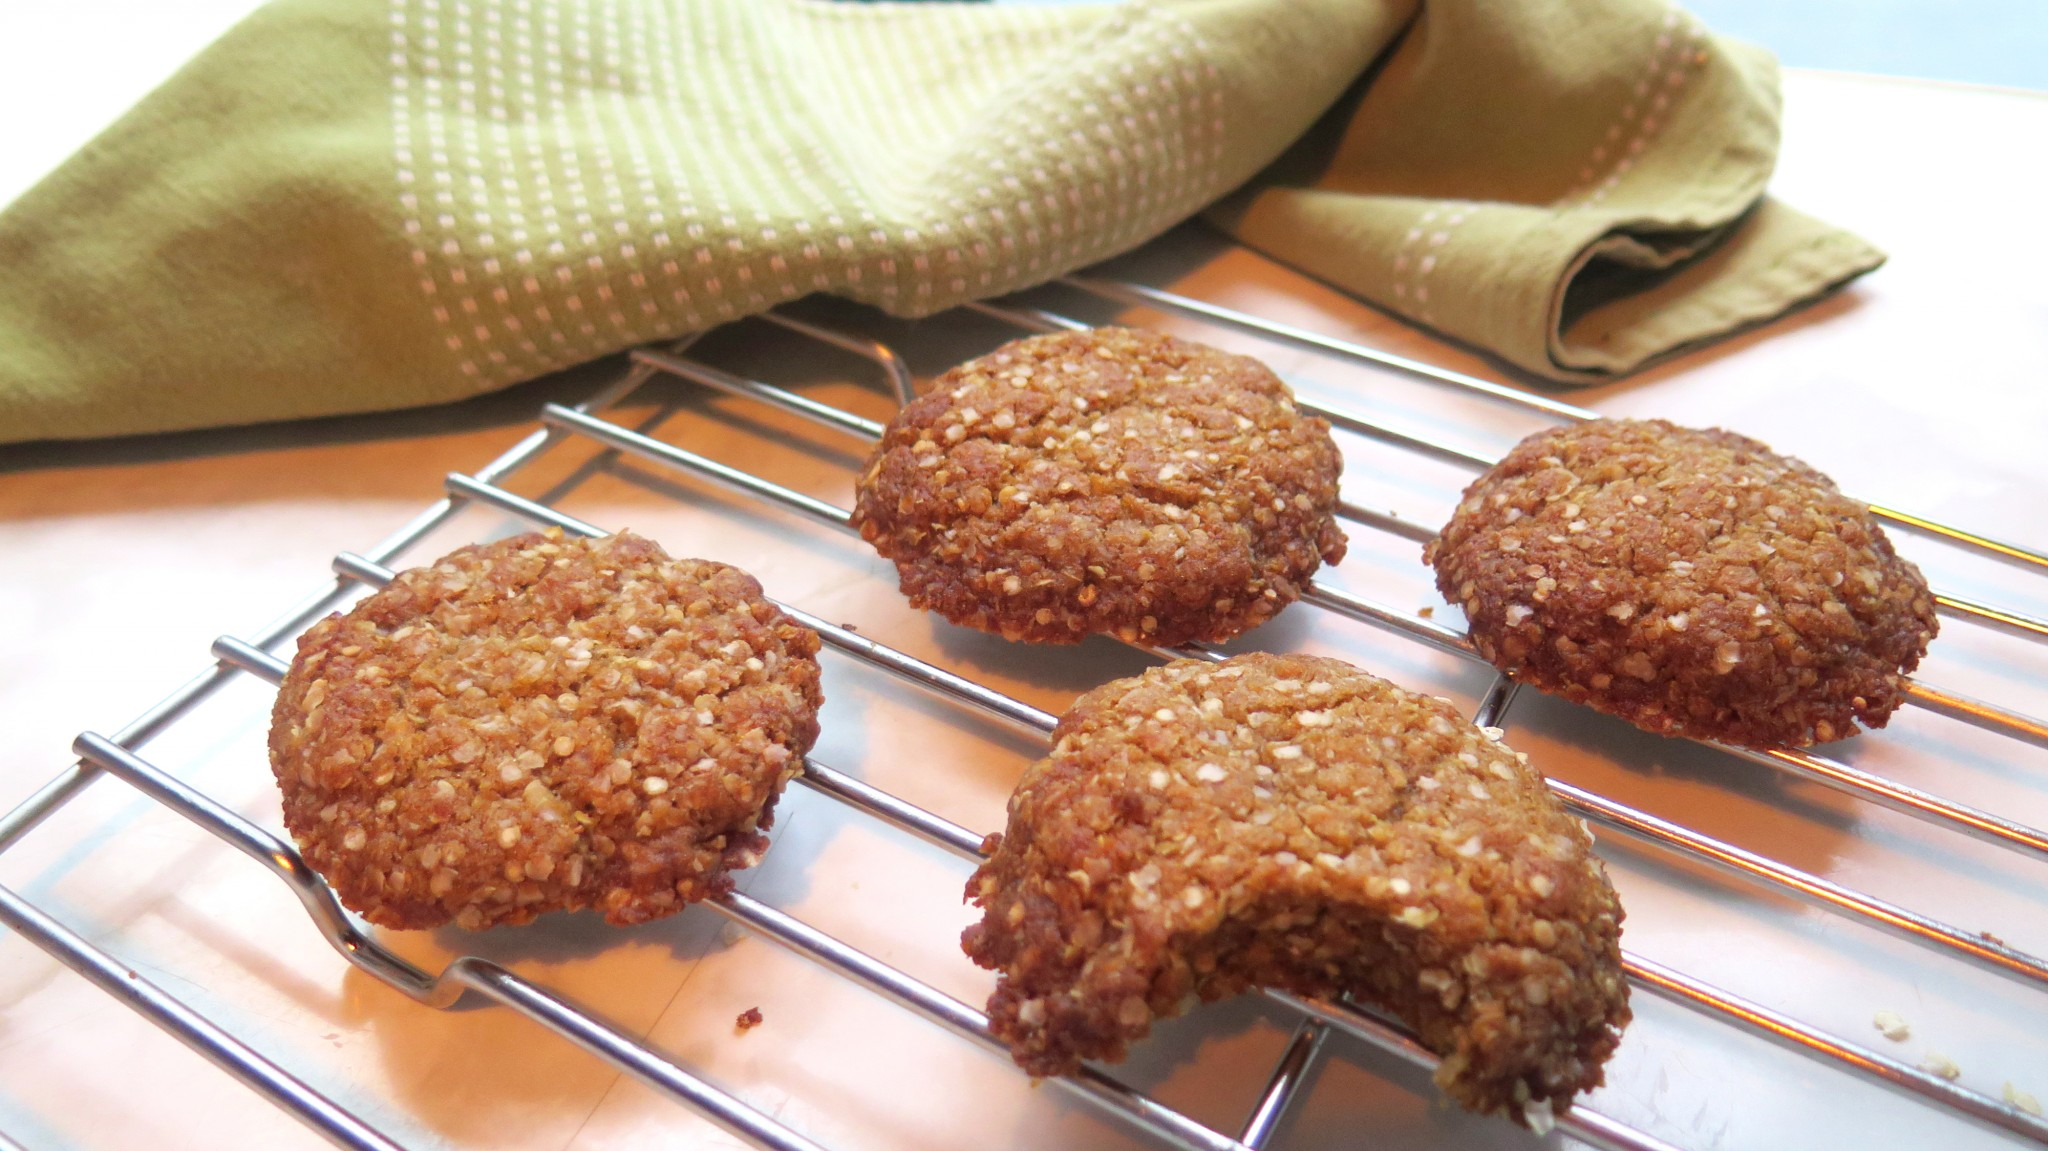 ANZAC biscuits made with quinoa and teff.